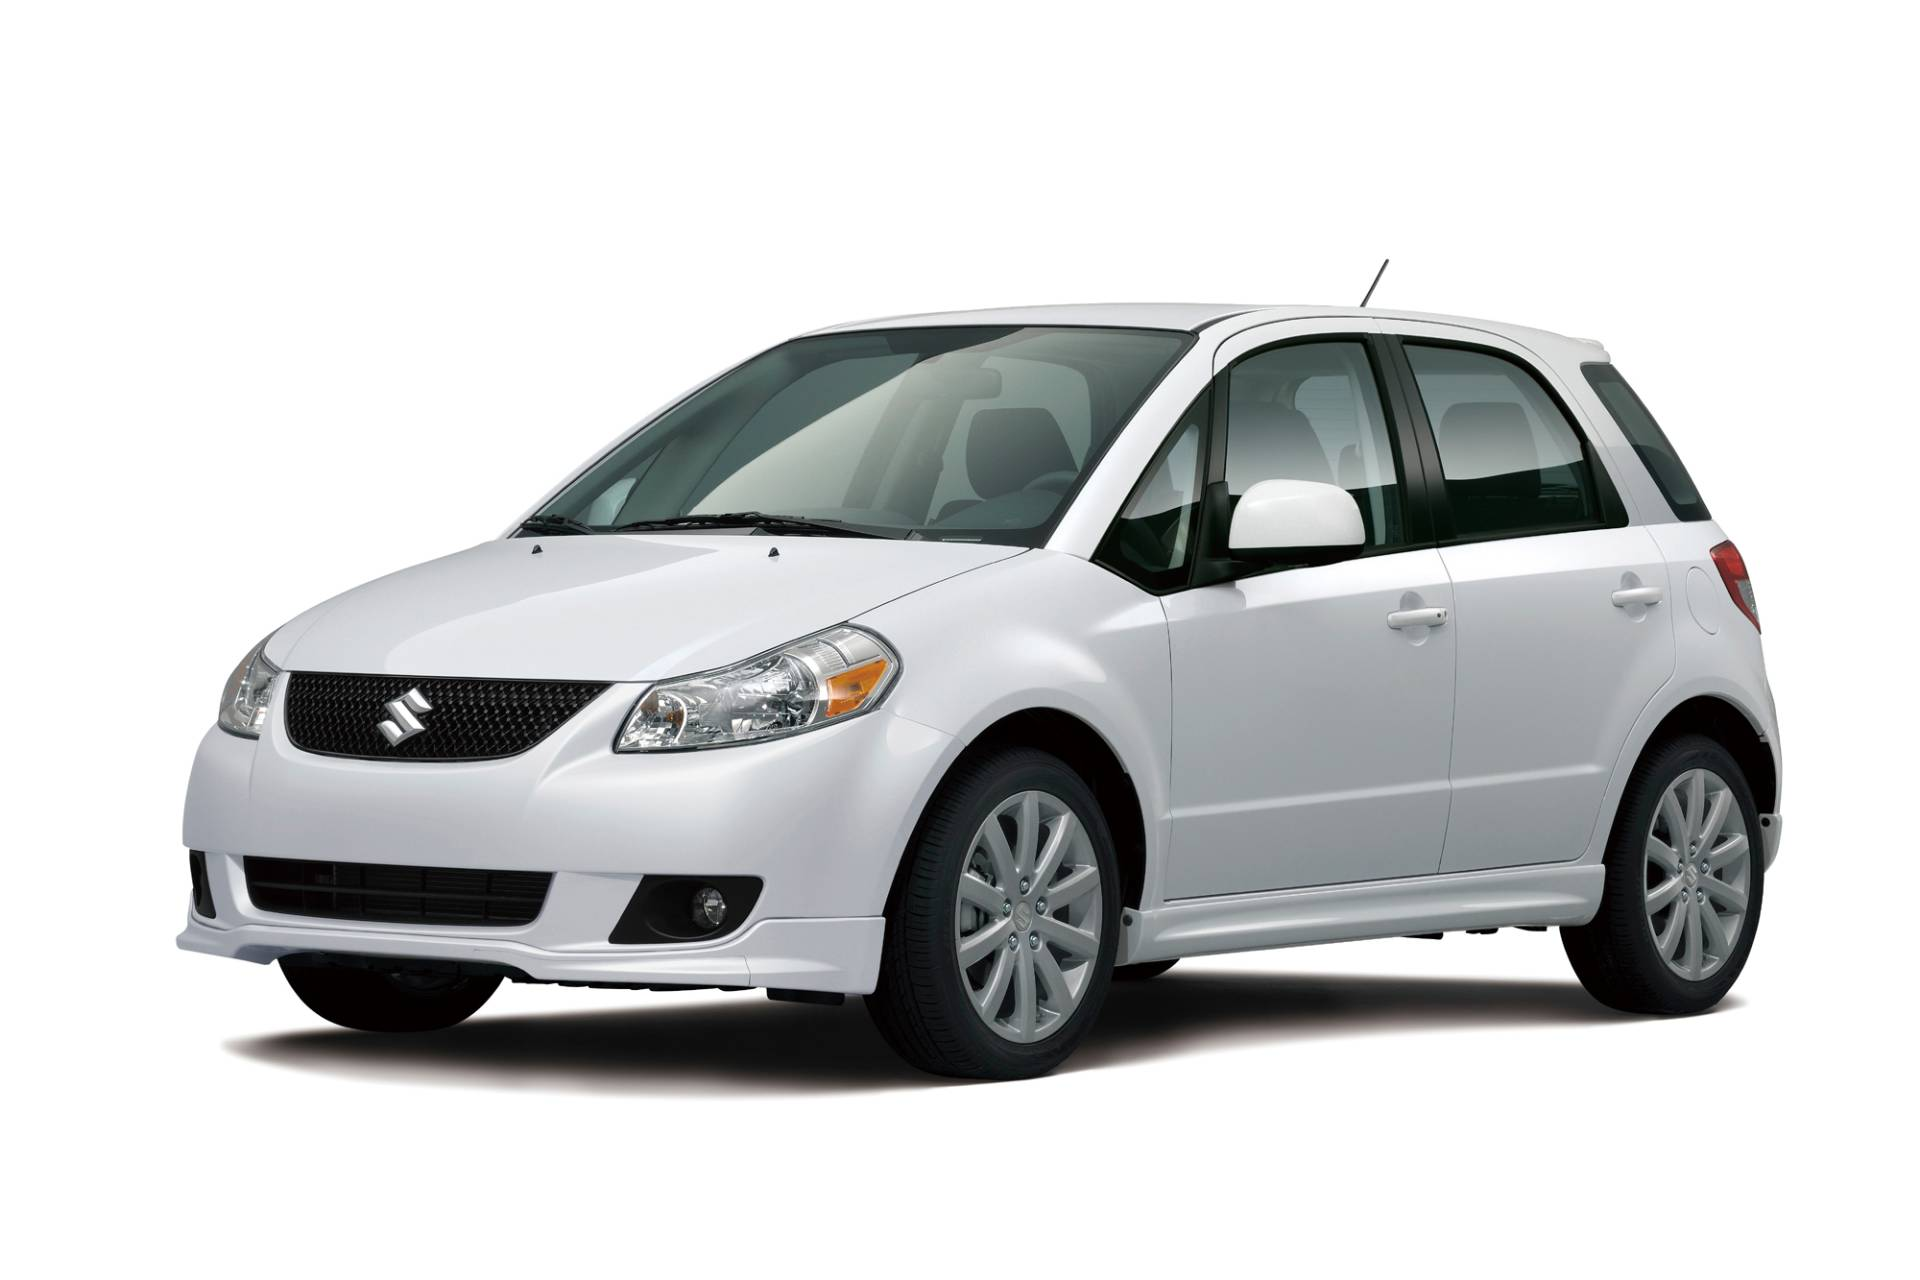 2013 suzuki sx4 sportback news and information. Black Bedroom Furniture Sets. Home Design Ideas